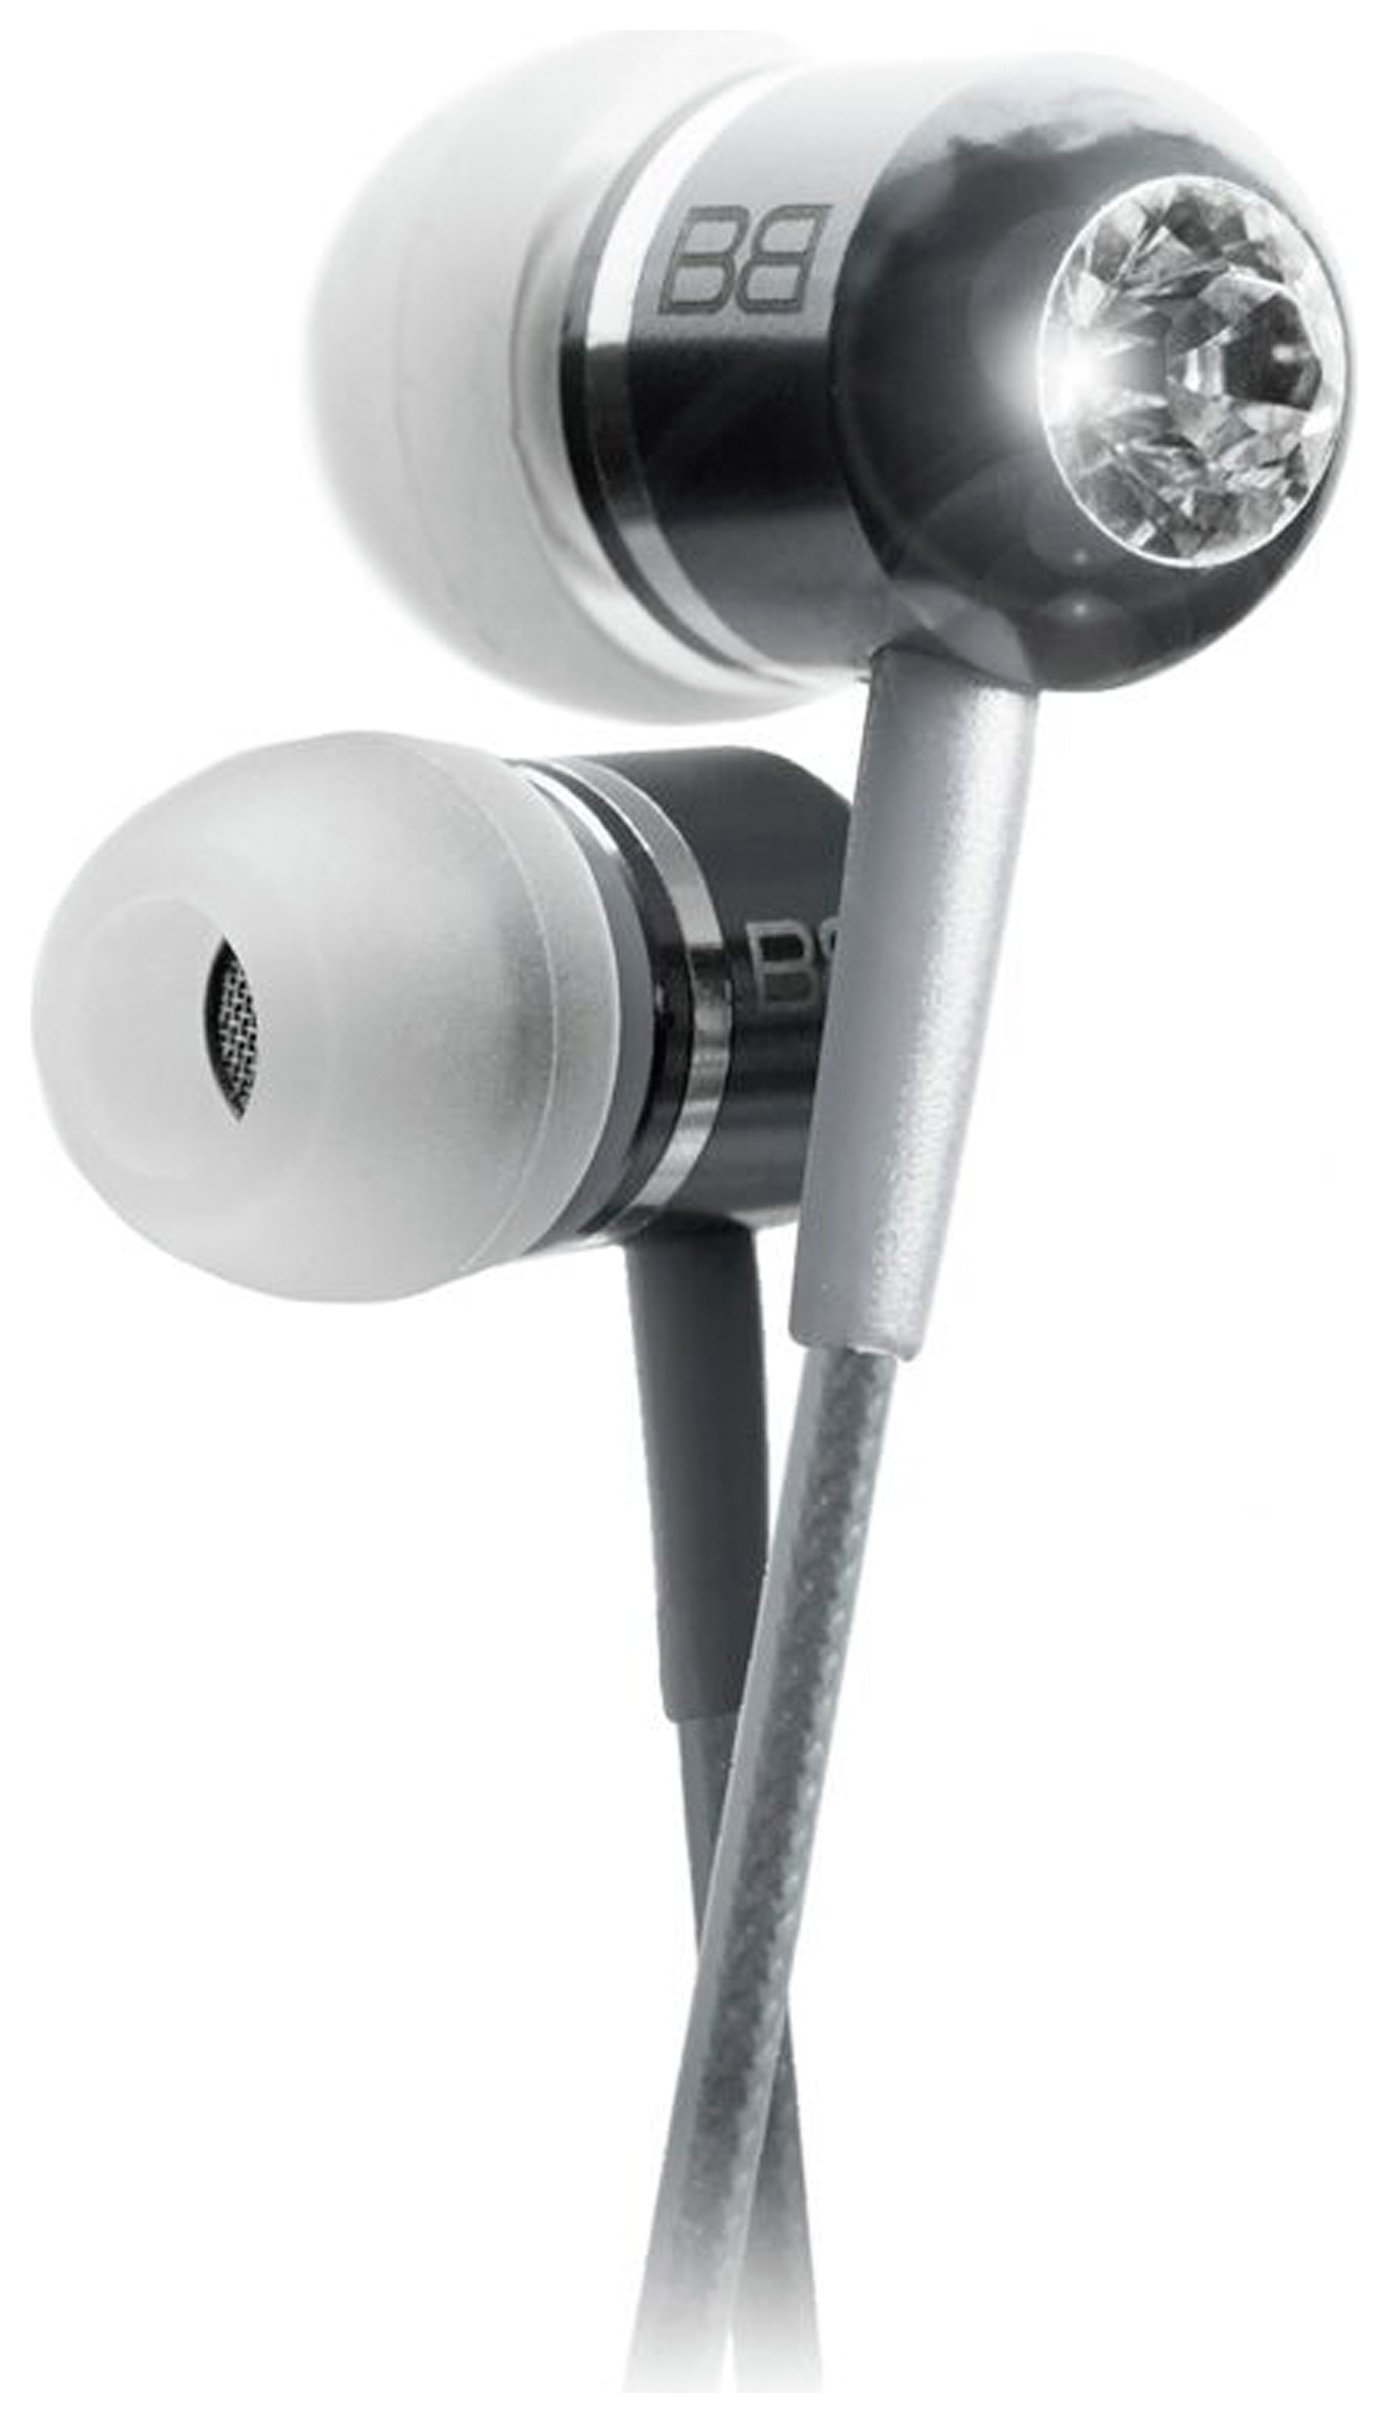 Image of BassBuds In Ear Headphones with MP3 Controller - Silver